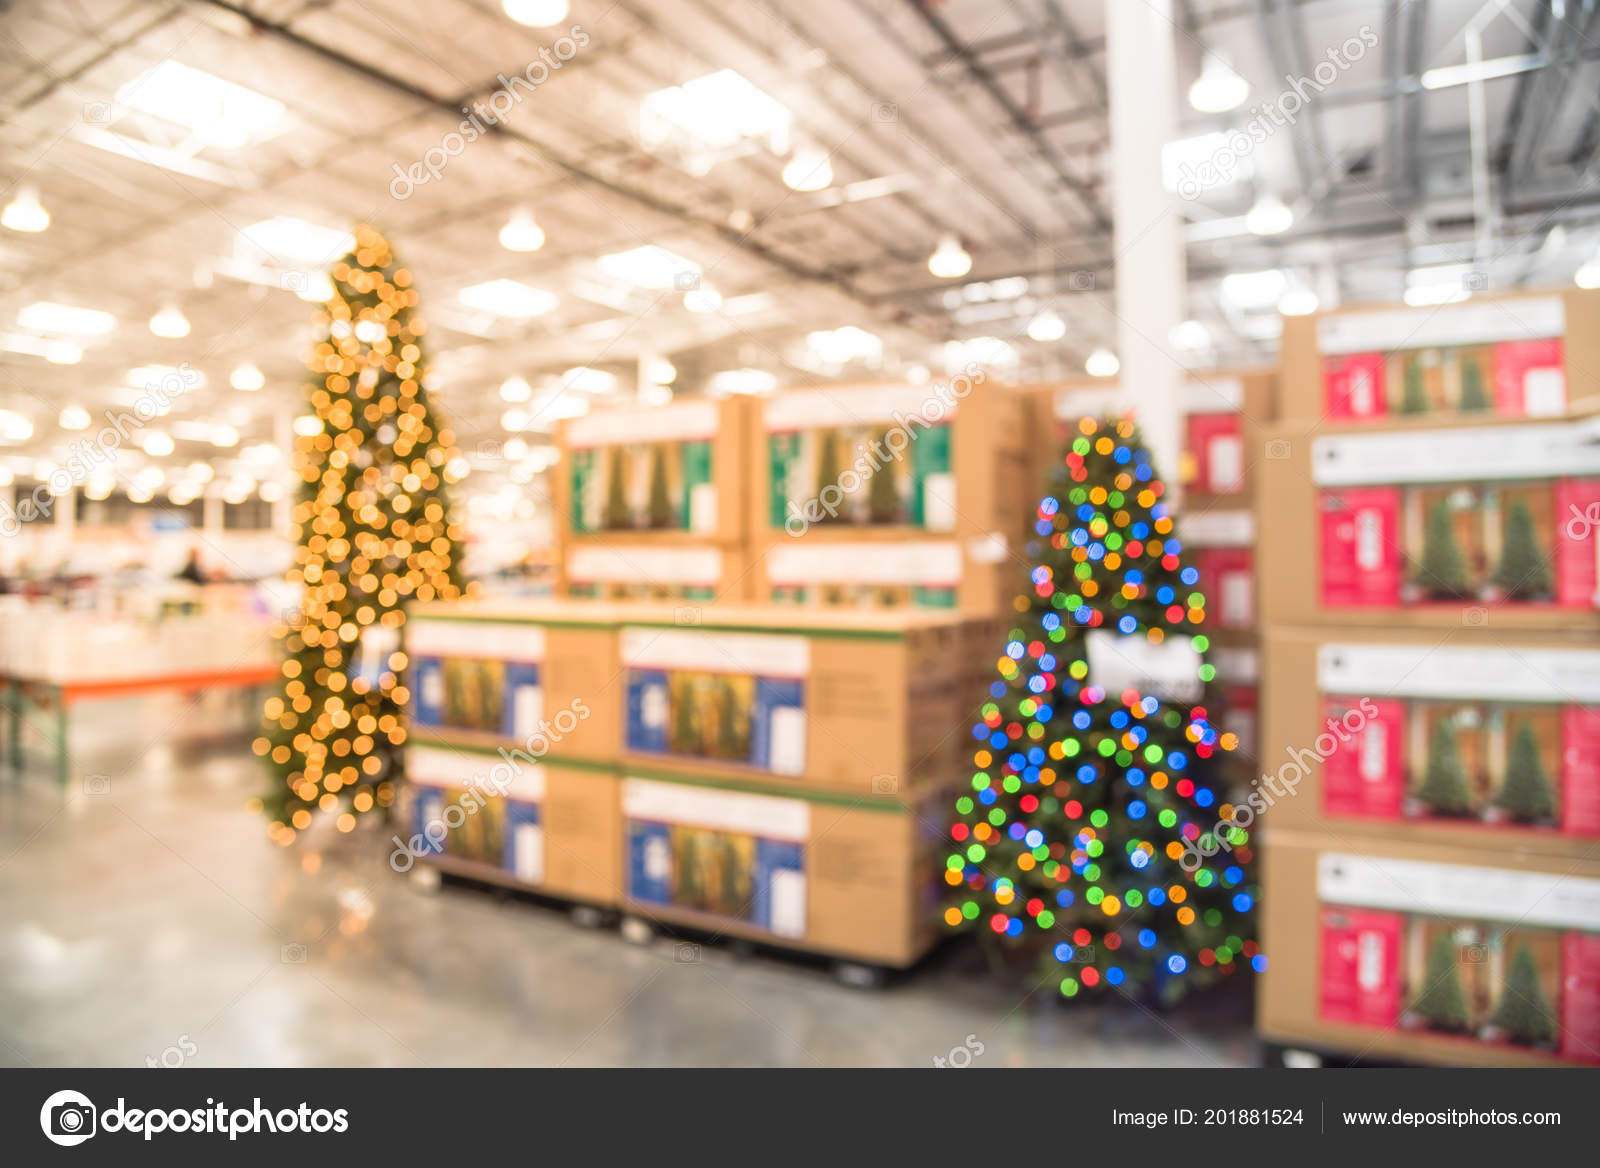 blurred image huge christmas tree decoration in wholesale store wreaths and strings of bokeh lights surround the artificial christmas tree - Christmas Wreath Decorations Wholesale